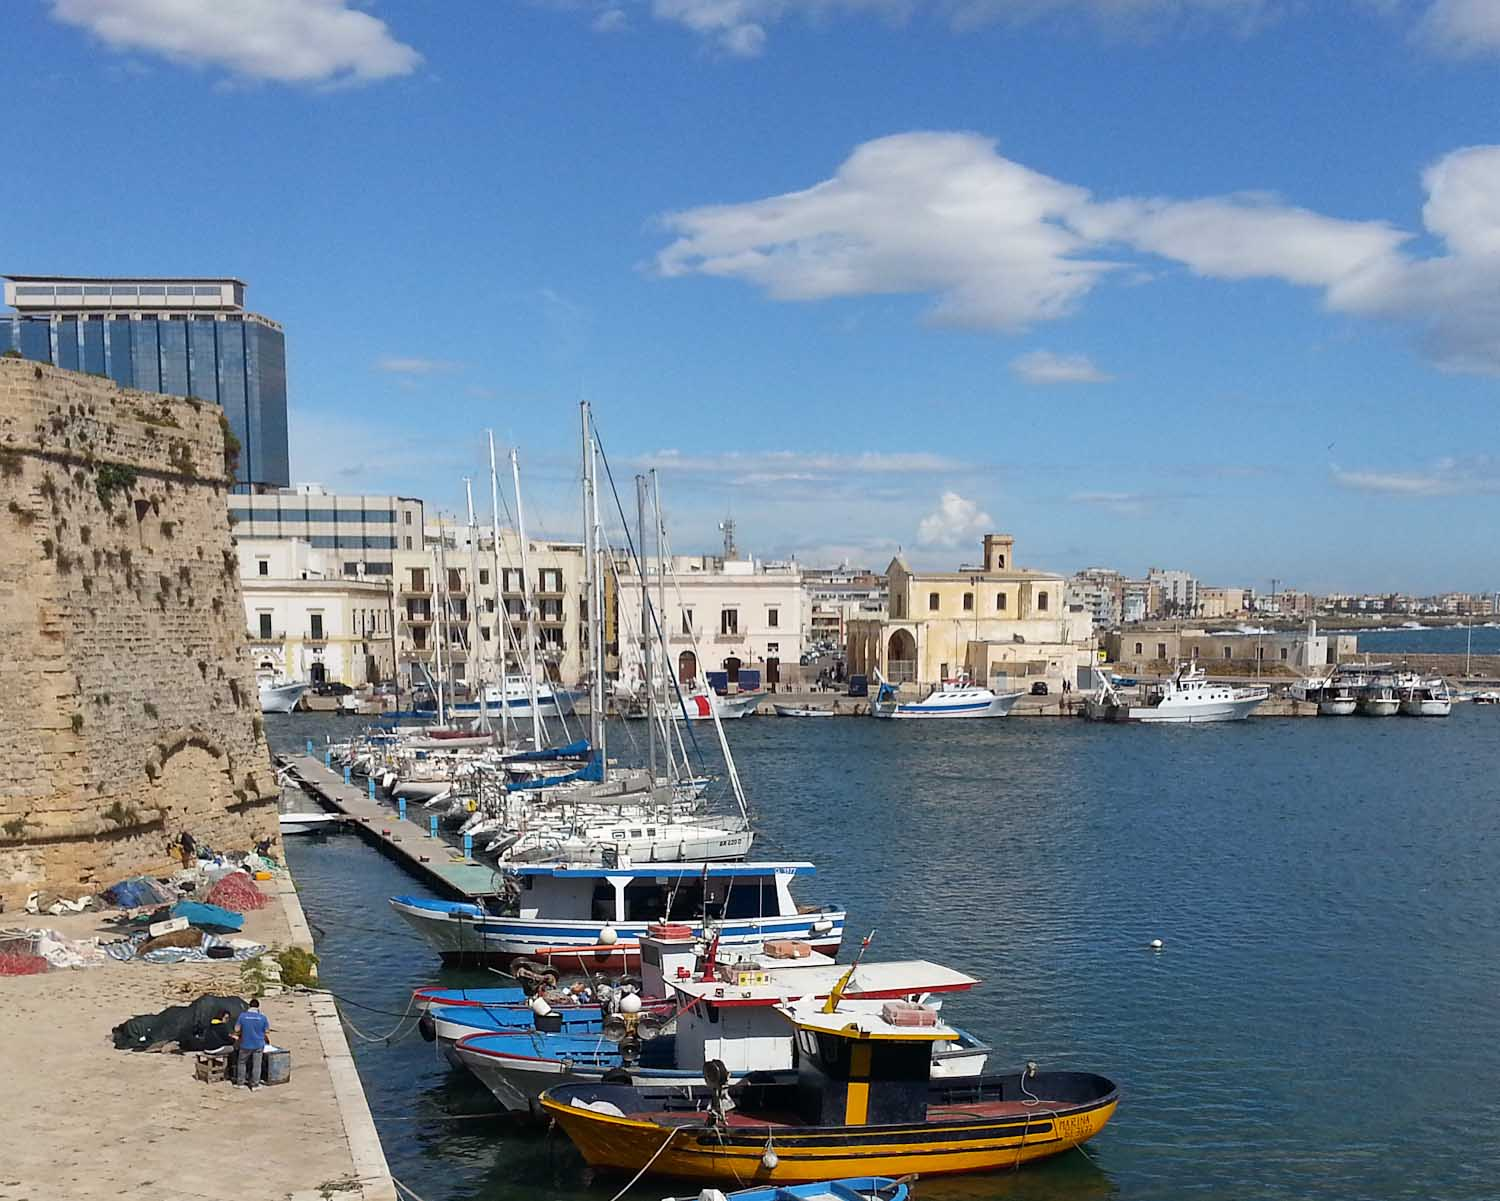 Fishing boats in Gallipoli, Puglia